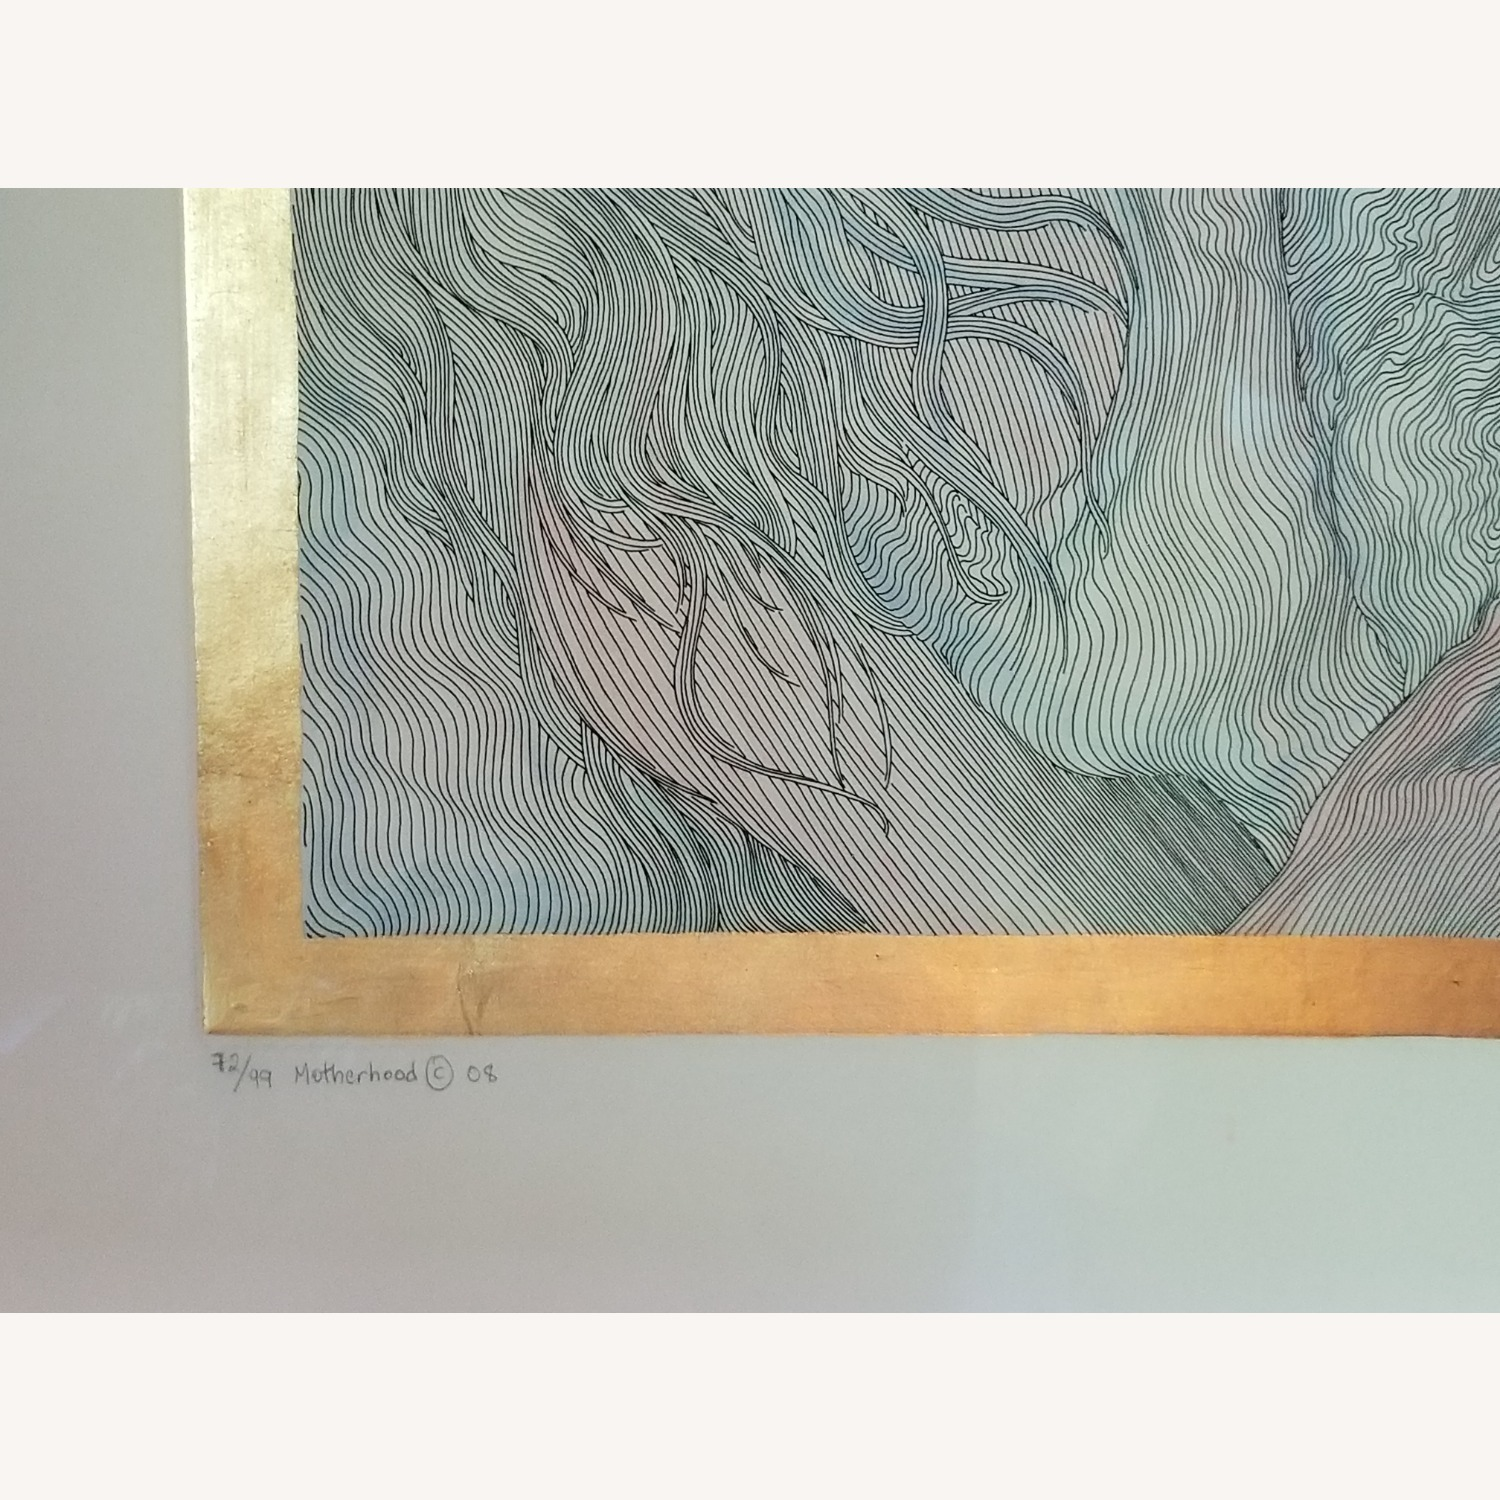 Guillaume Azoulay Original Line Drawing Lithograph - image-3